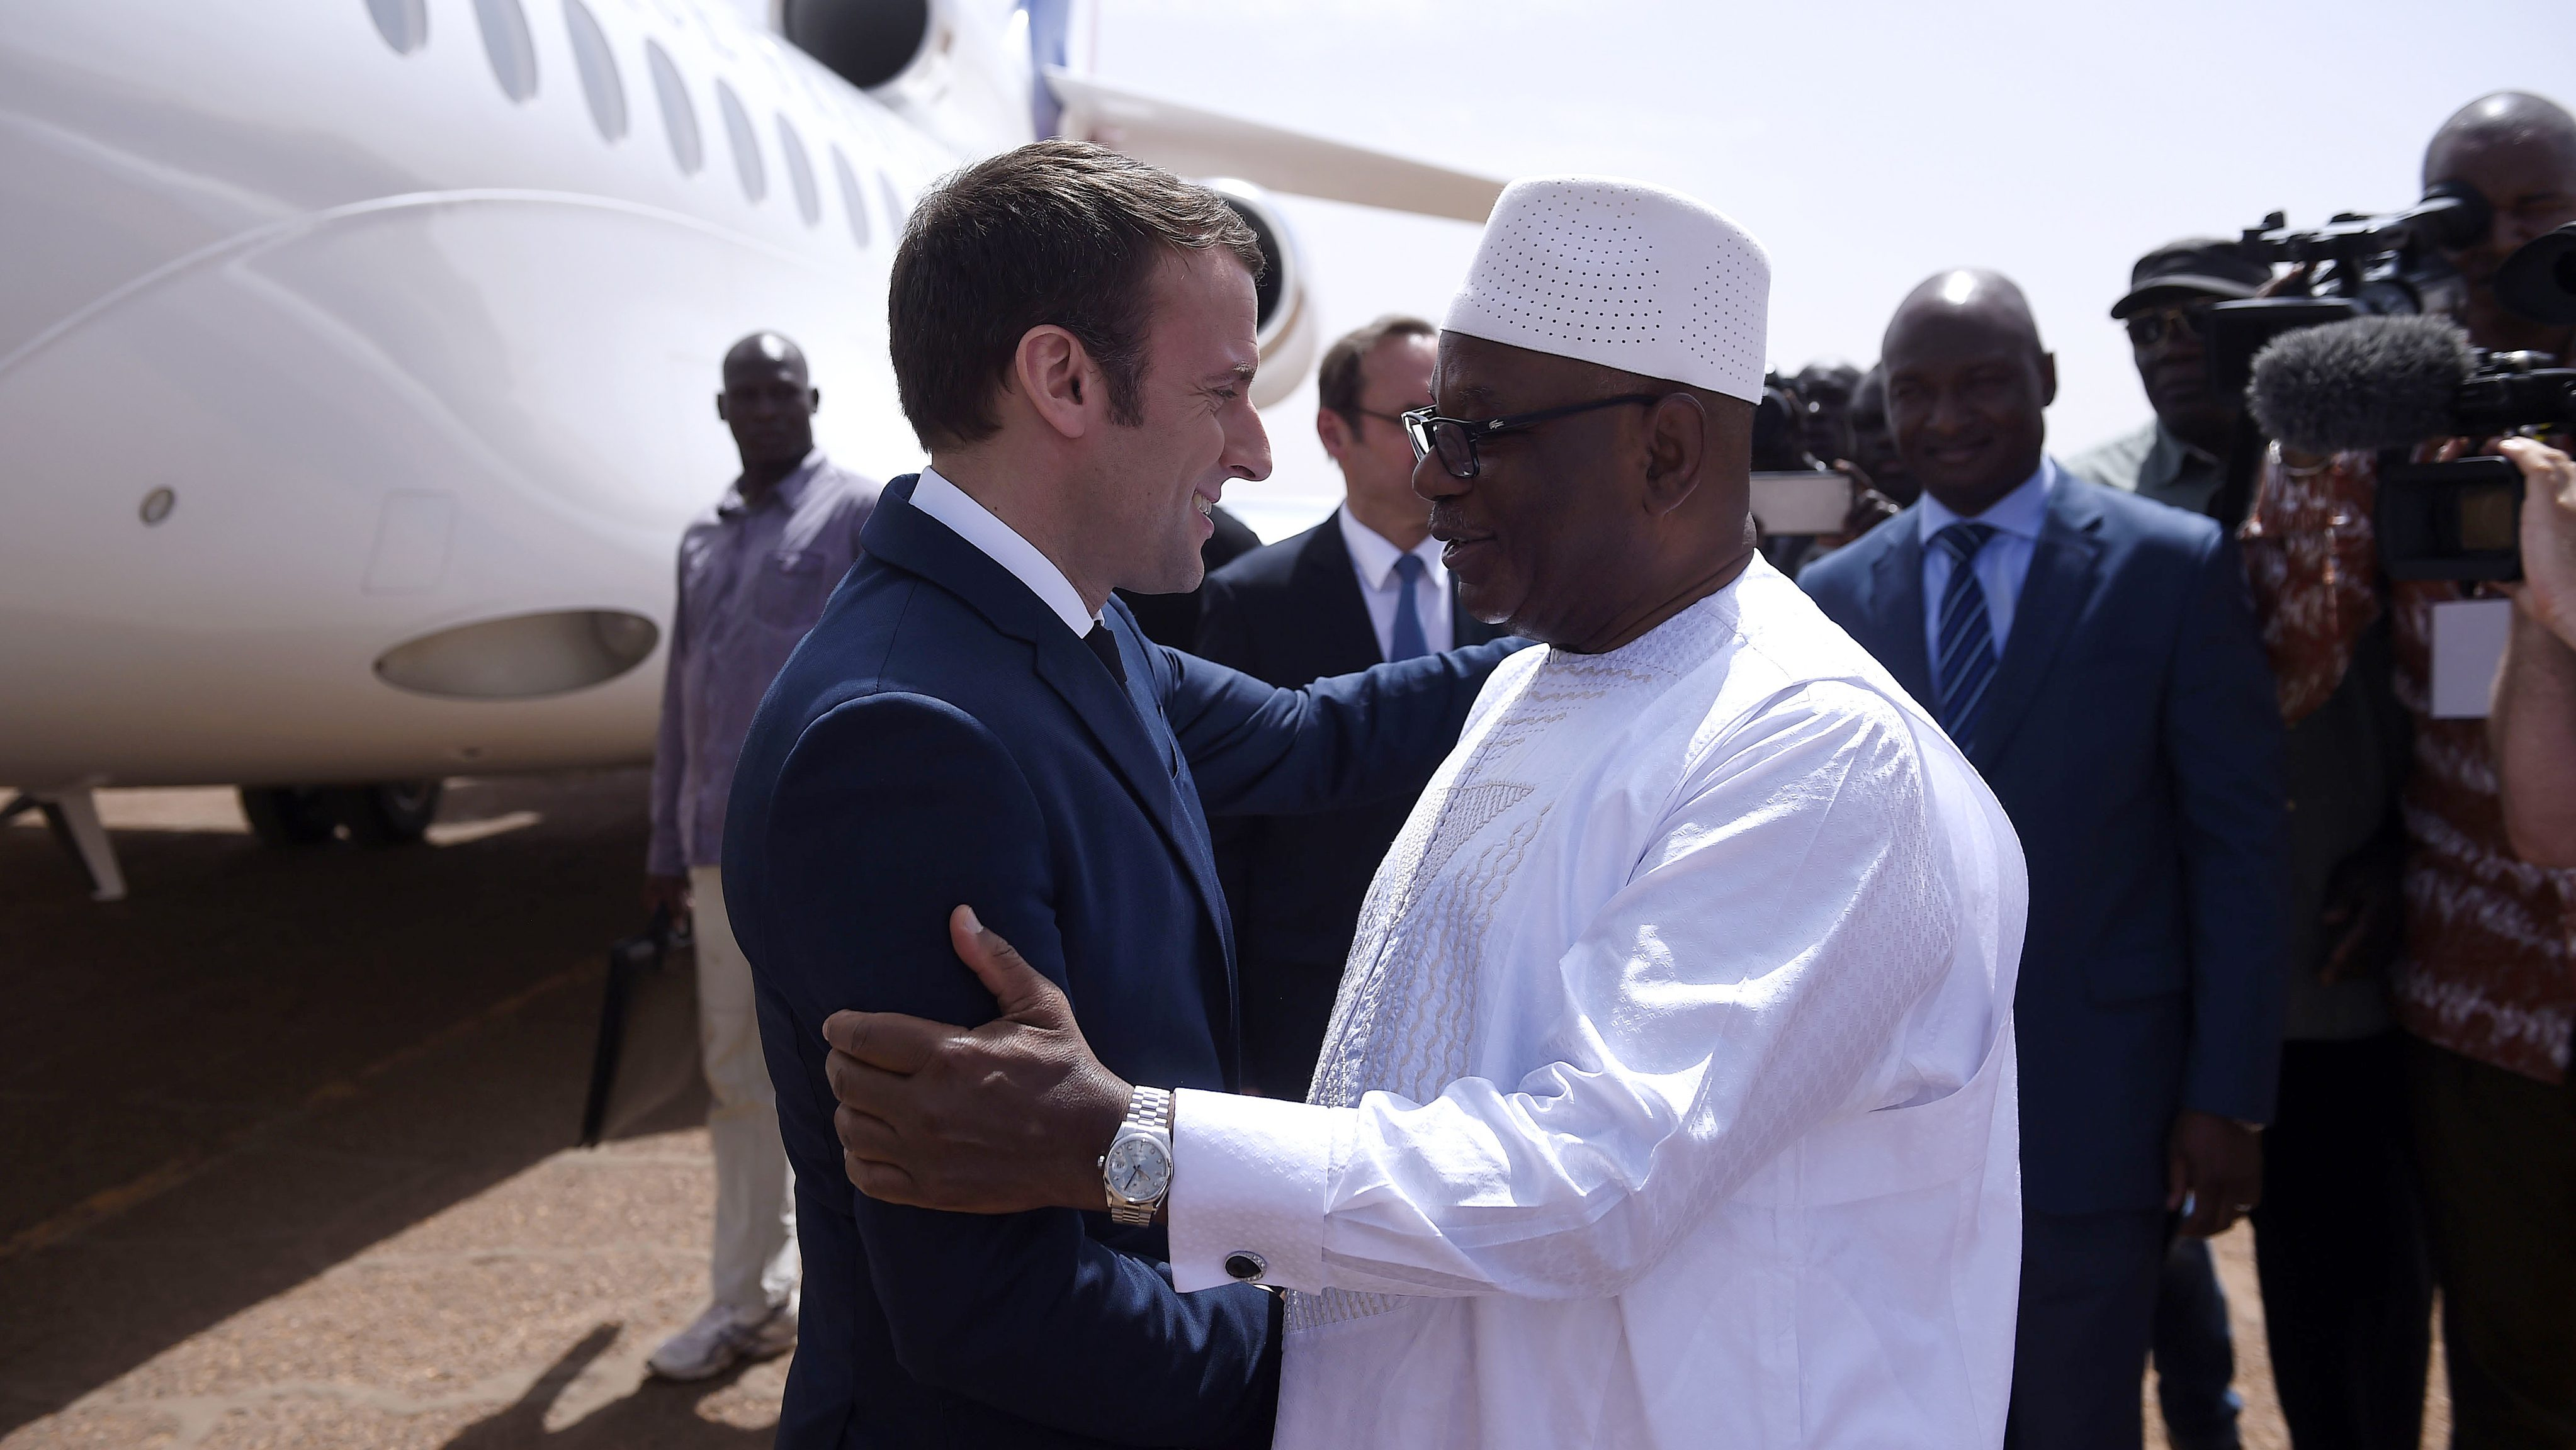 French President Emmanuel Macron with Mali's President Ibrahim Boubacar Keita as he visits French troops in Africa's Sahel region in Mali